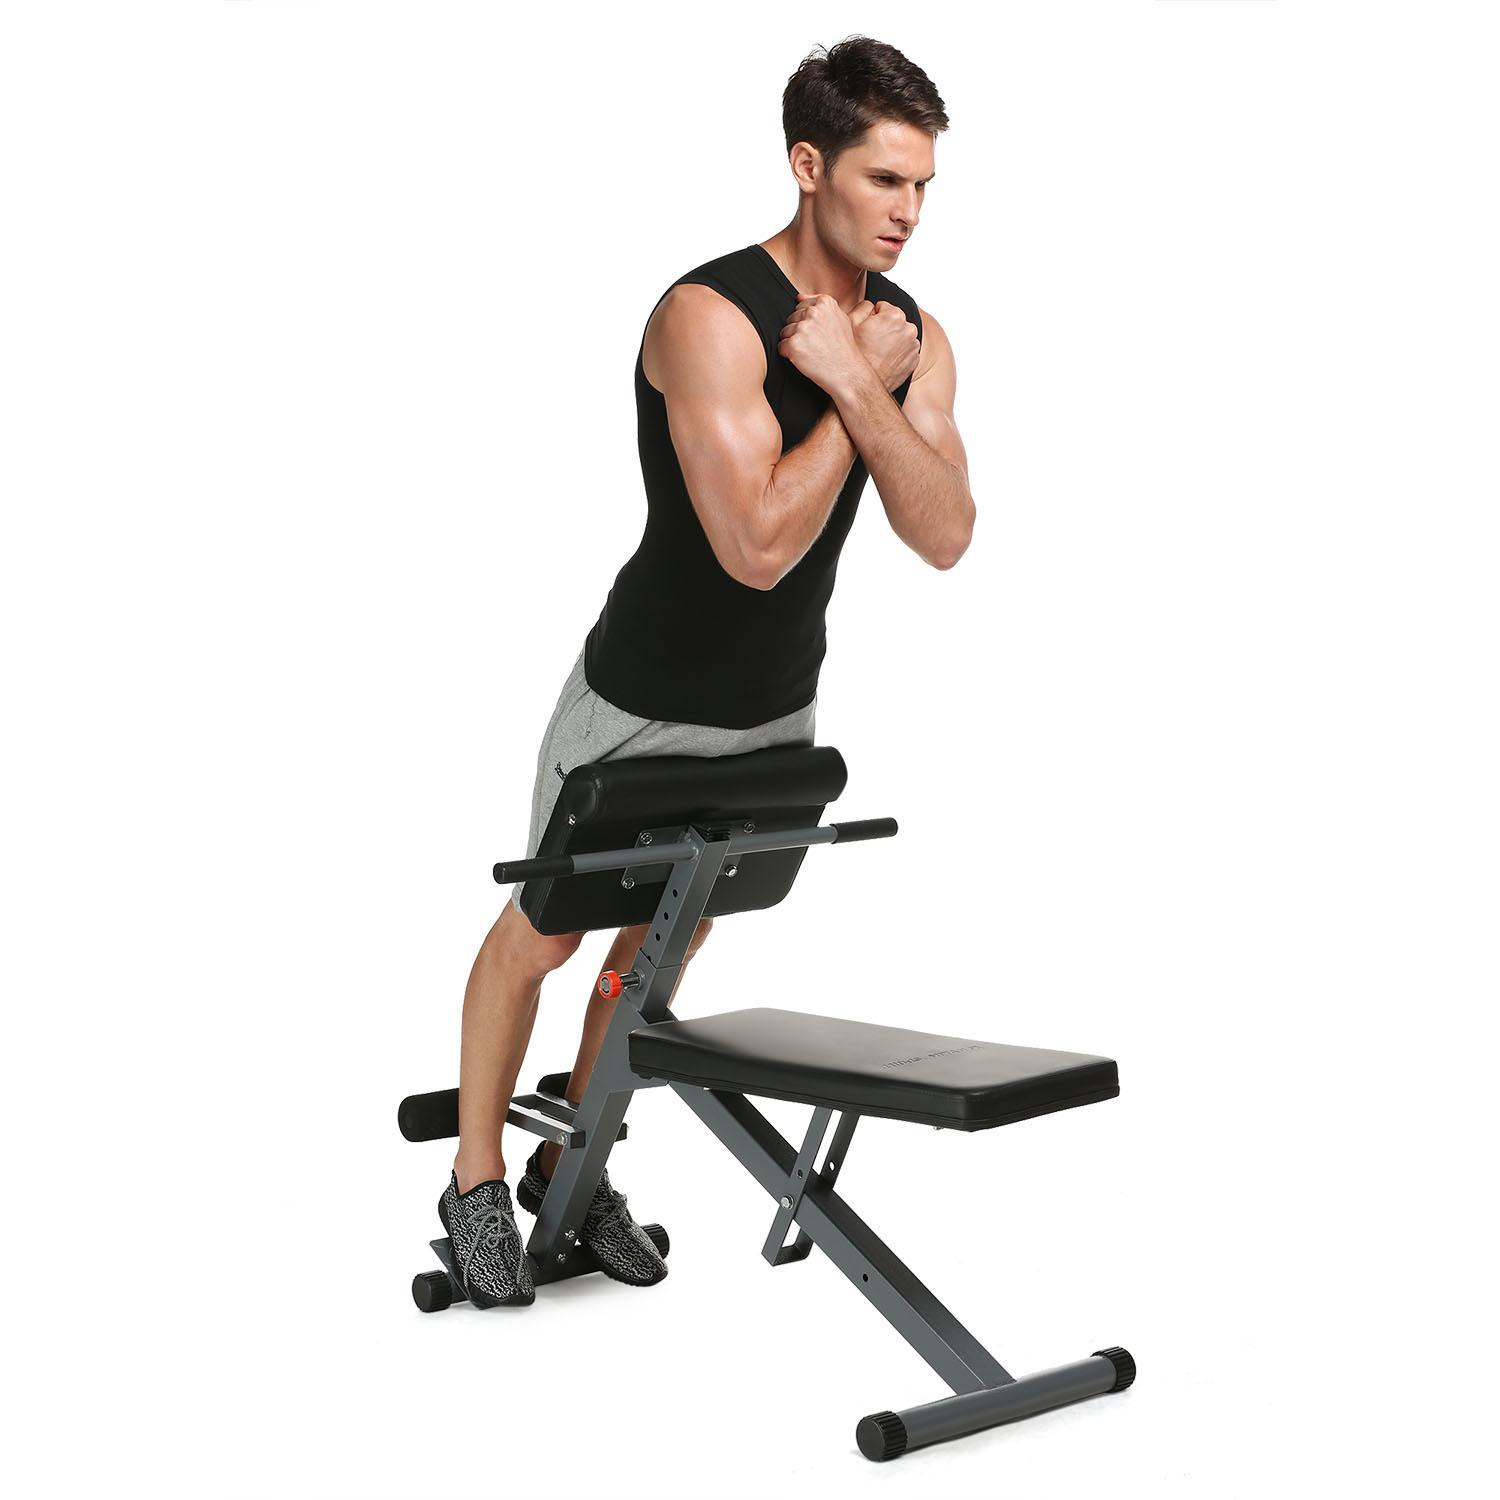 Hyperextension Fitness Back Exercise Bench Folding Roman Chair Home Gym Training